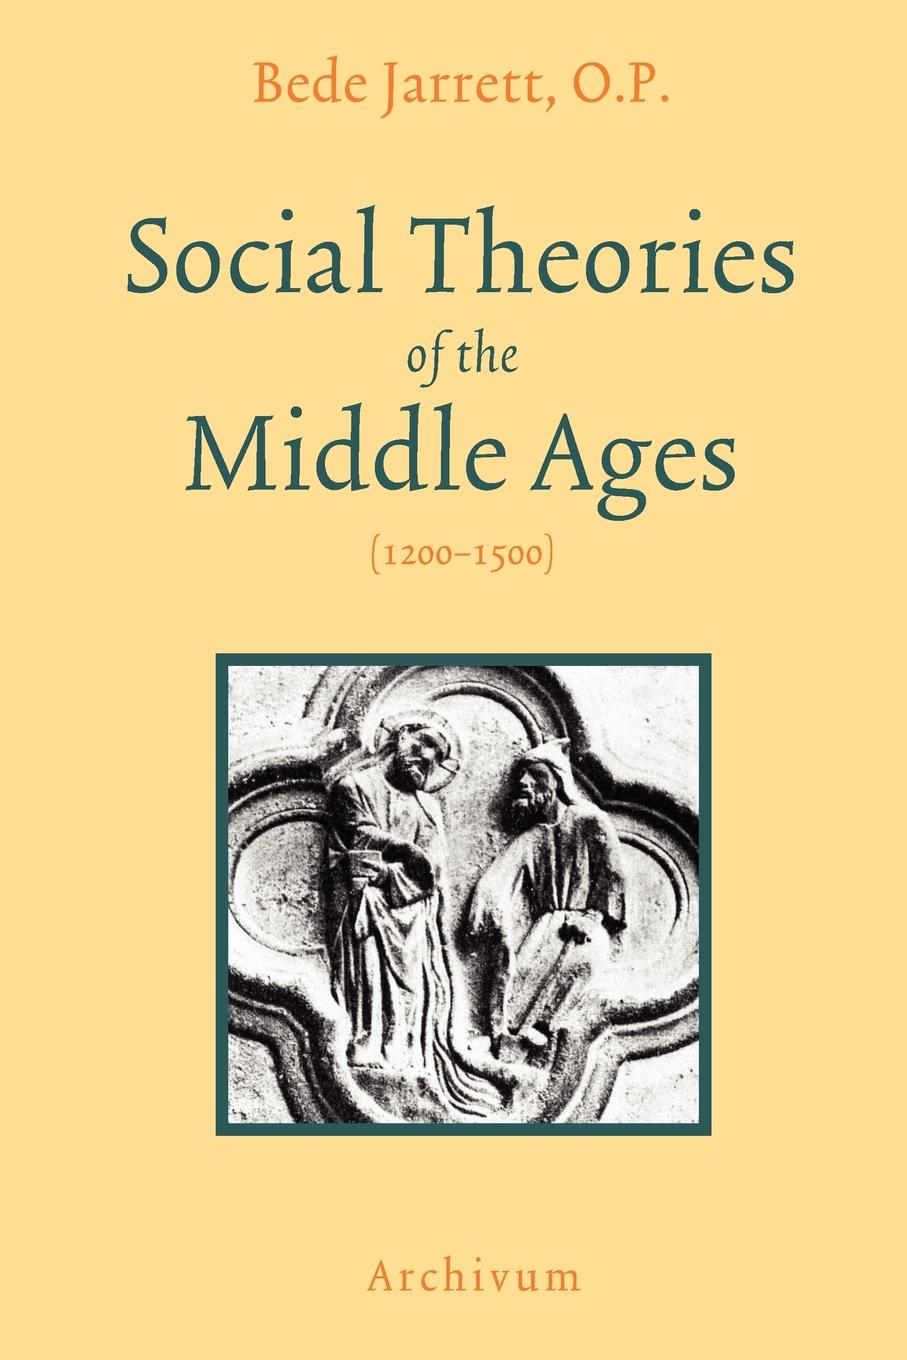 Bede Jarrett Social Theories of the Middle Ages (1200-1500)